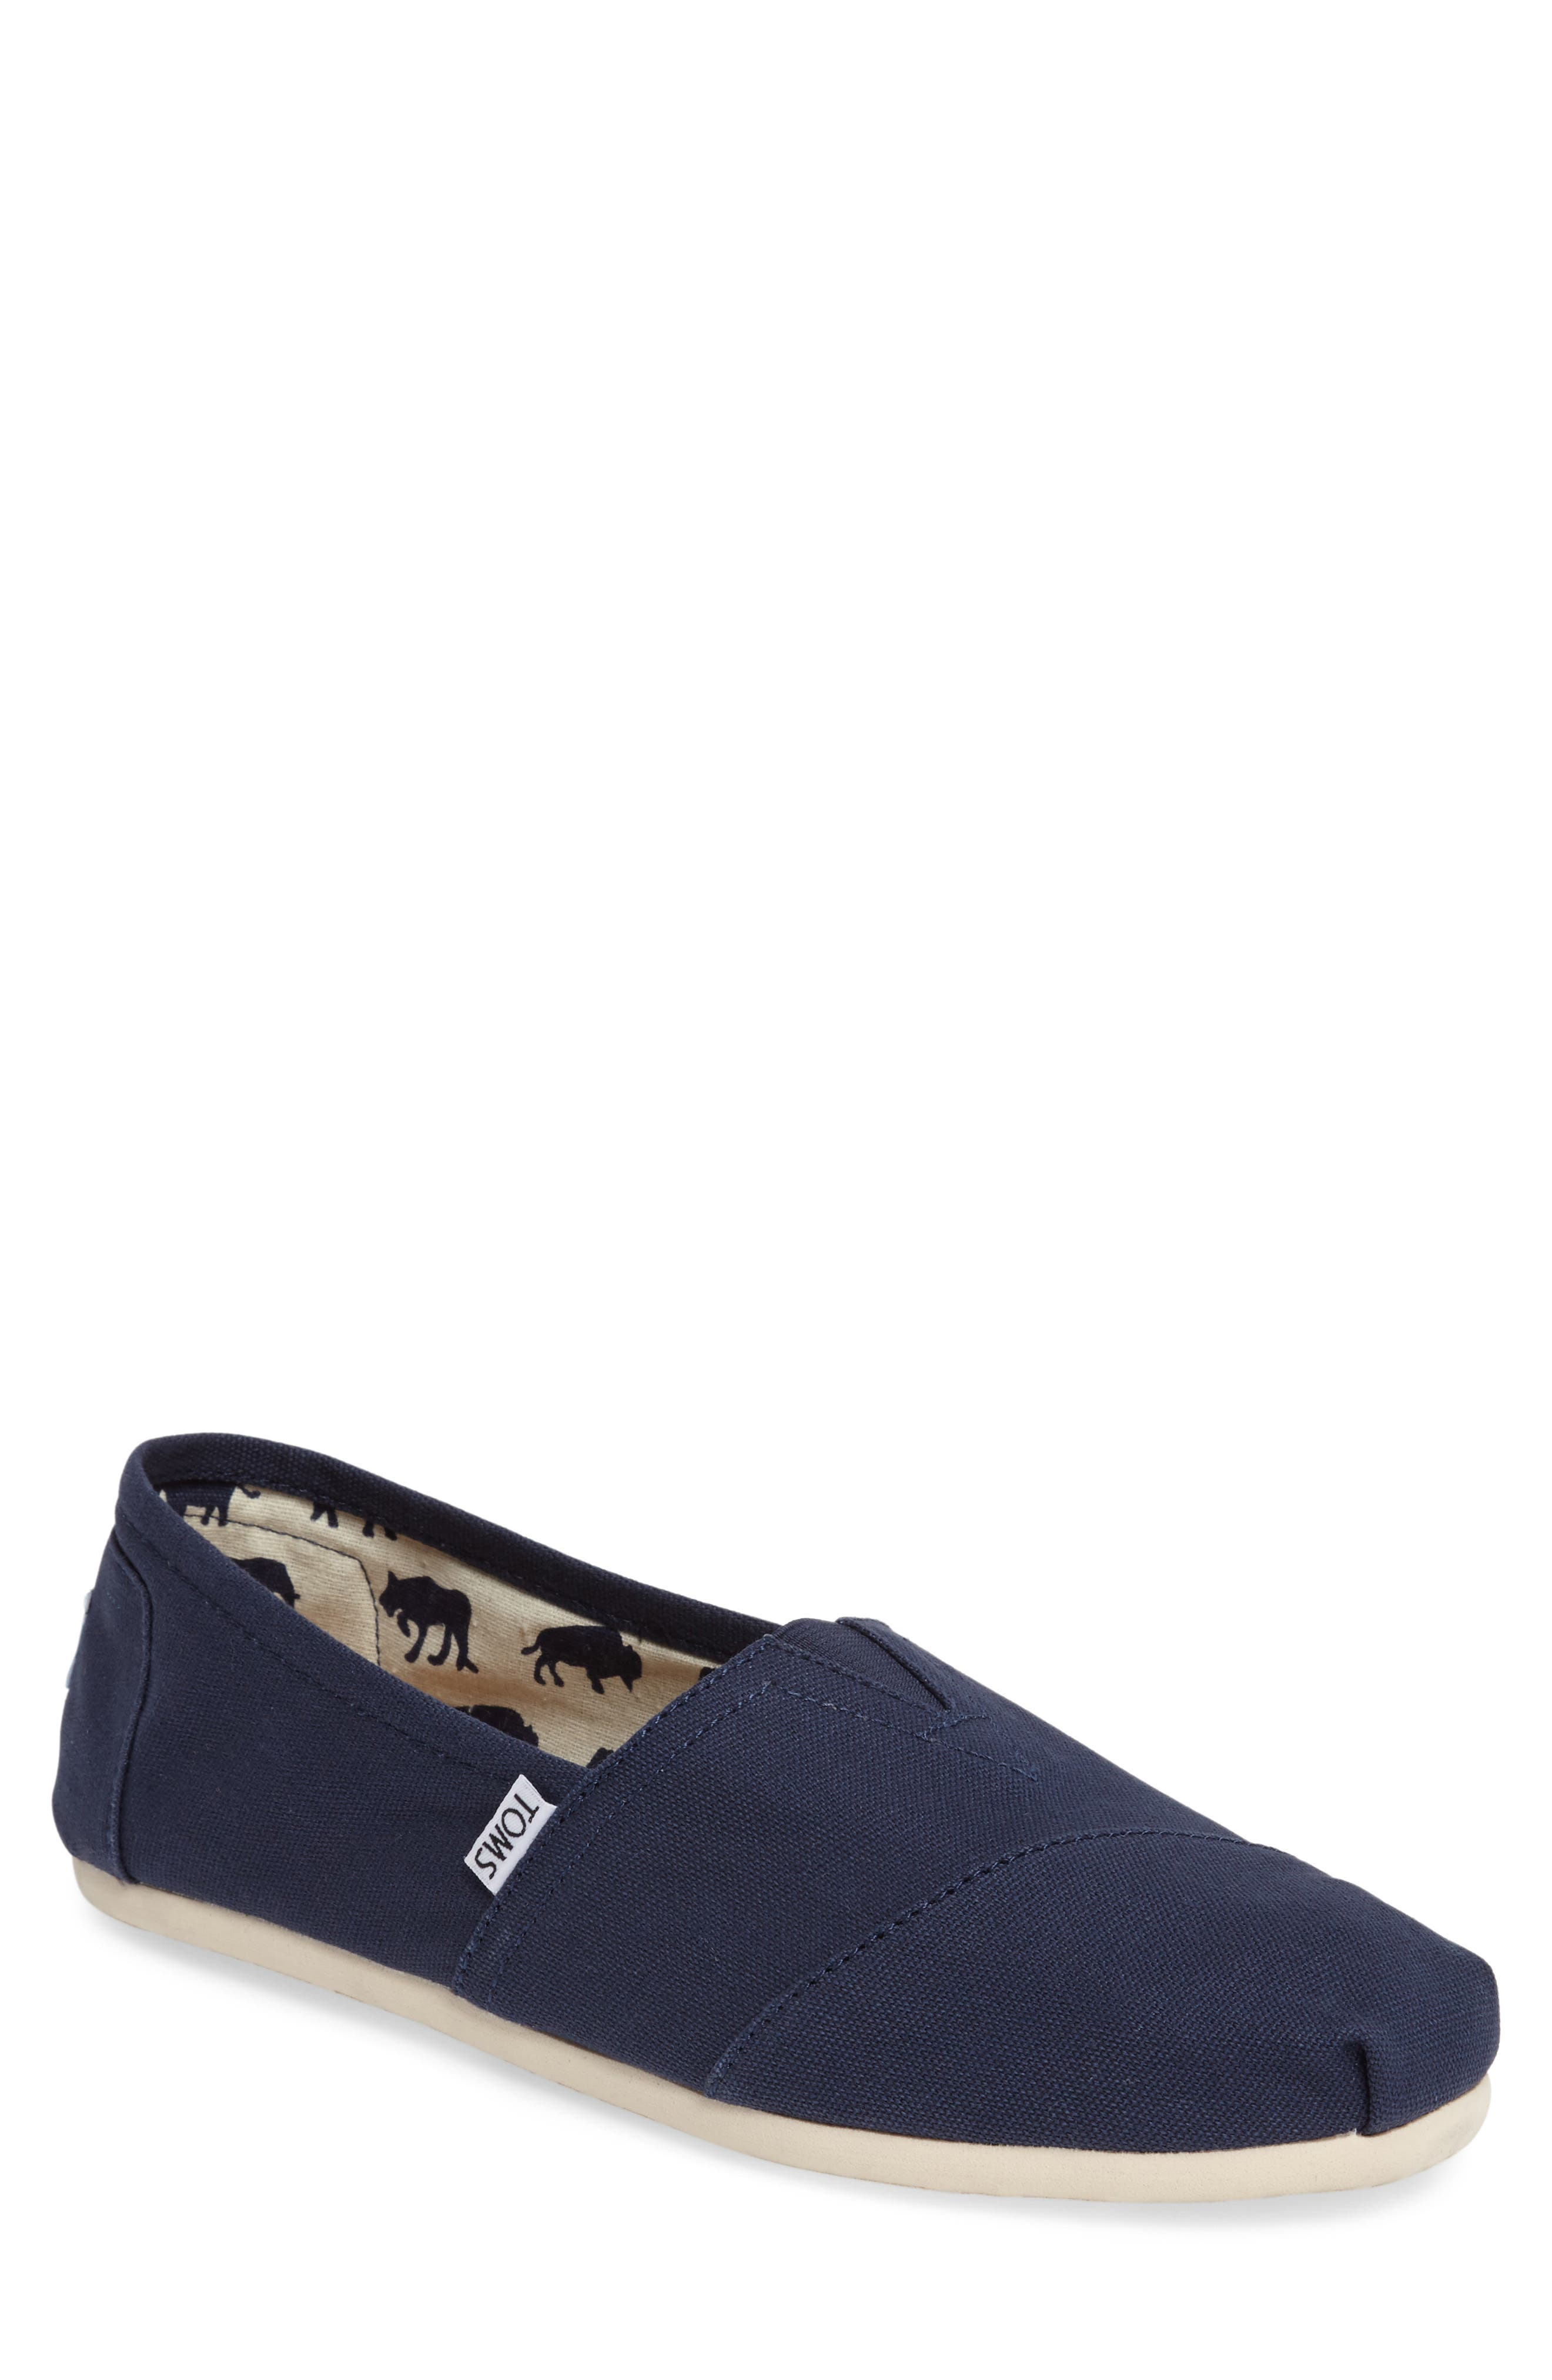 TOMS 'Classic' Canvas Slip-On, Main, color, NAVY